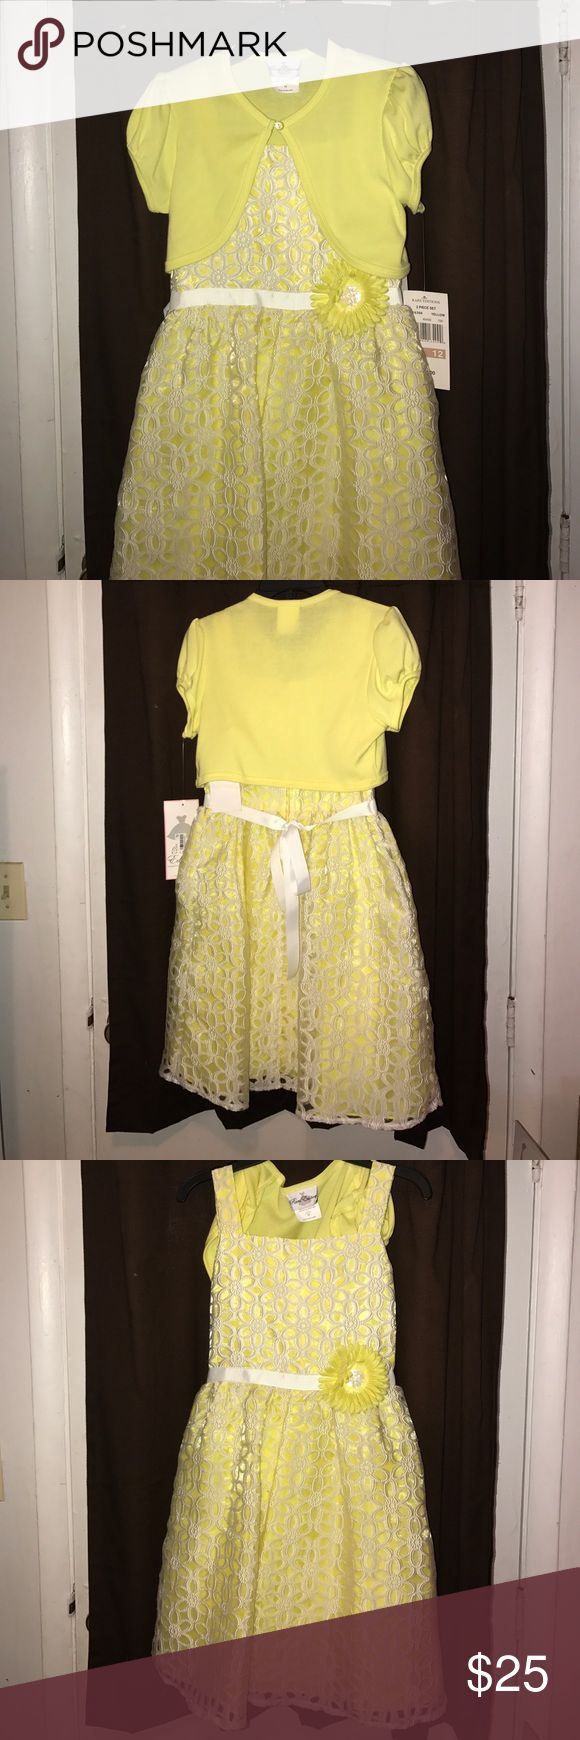 Girls dress Girls yellow dress with matching sweater from Macy's. Size Large 12. Brand new with tags attached. Rare Editions Dresses Formal